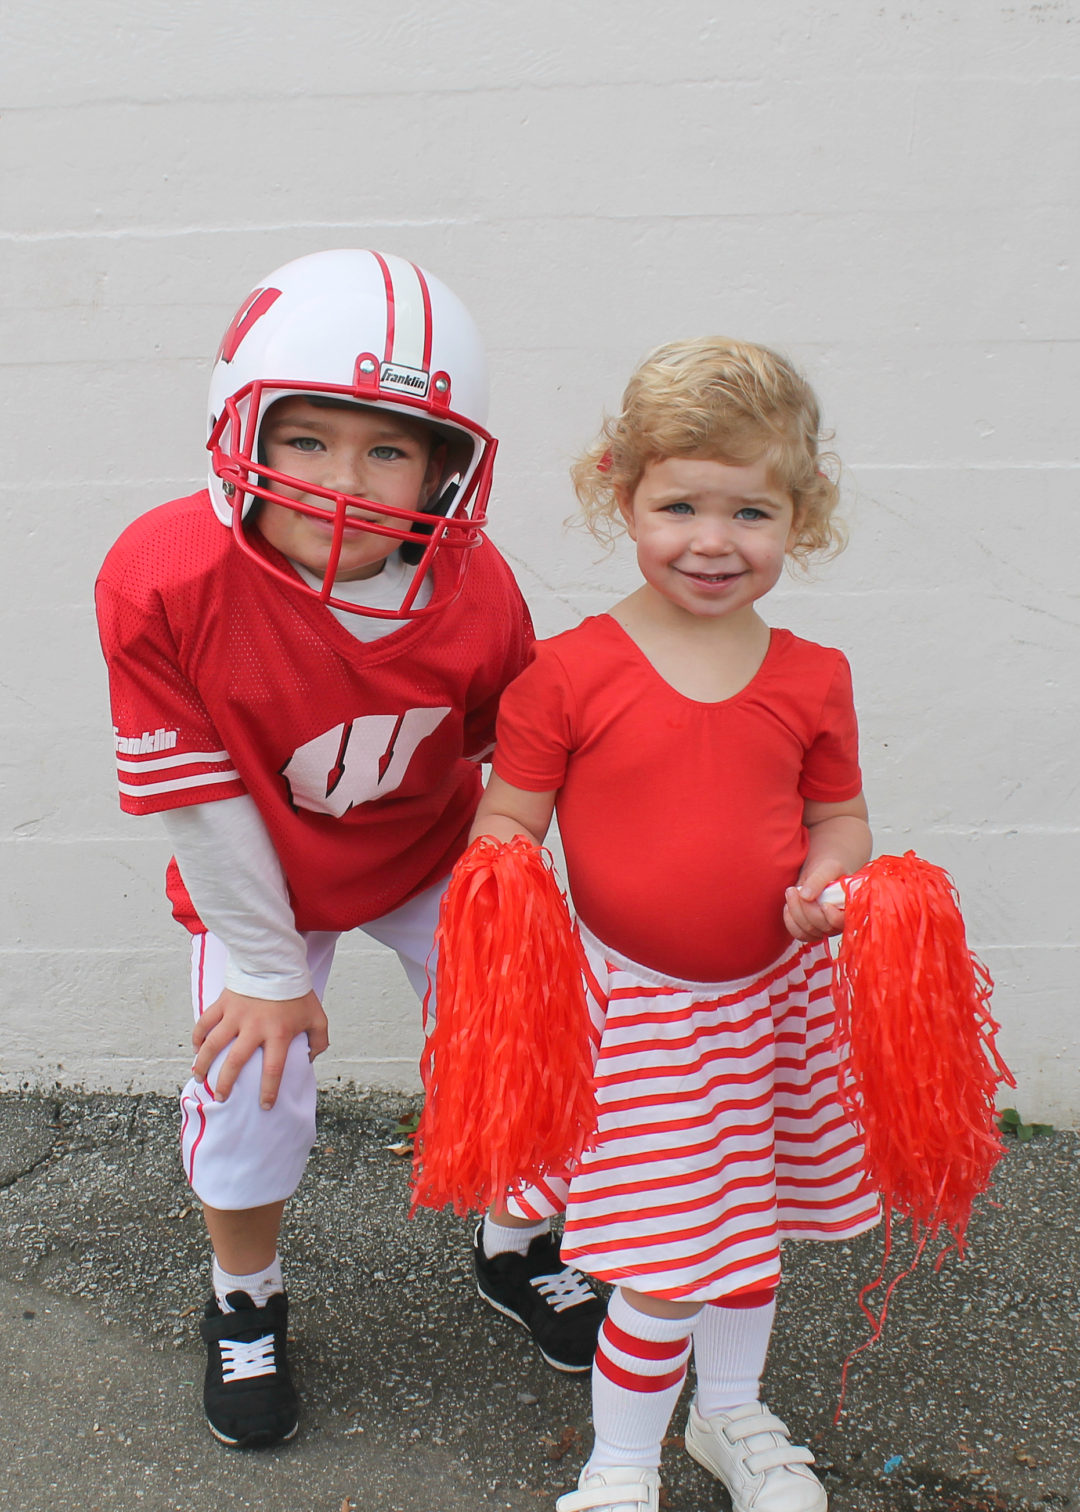 Family Halloween Costume Ideas | Group Costume Ideas | Kids Halloween Costumes | Football Costume